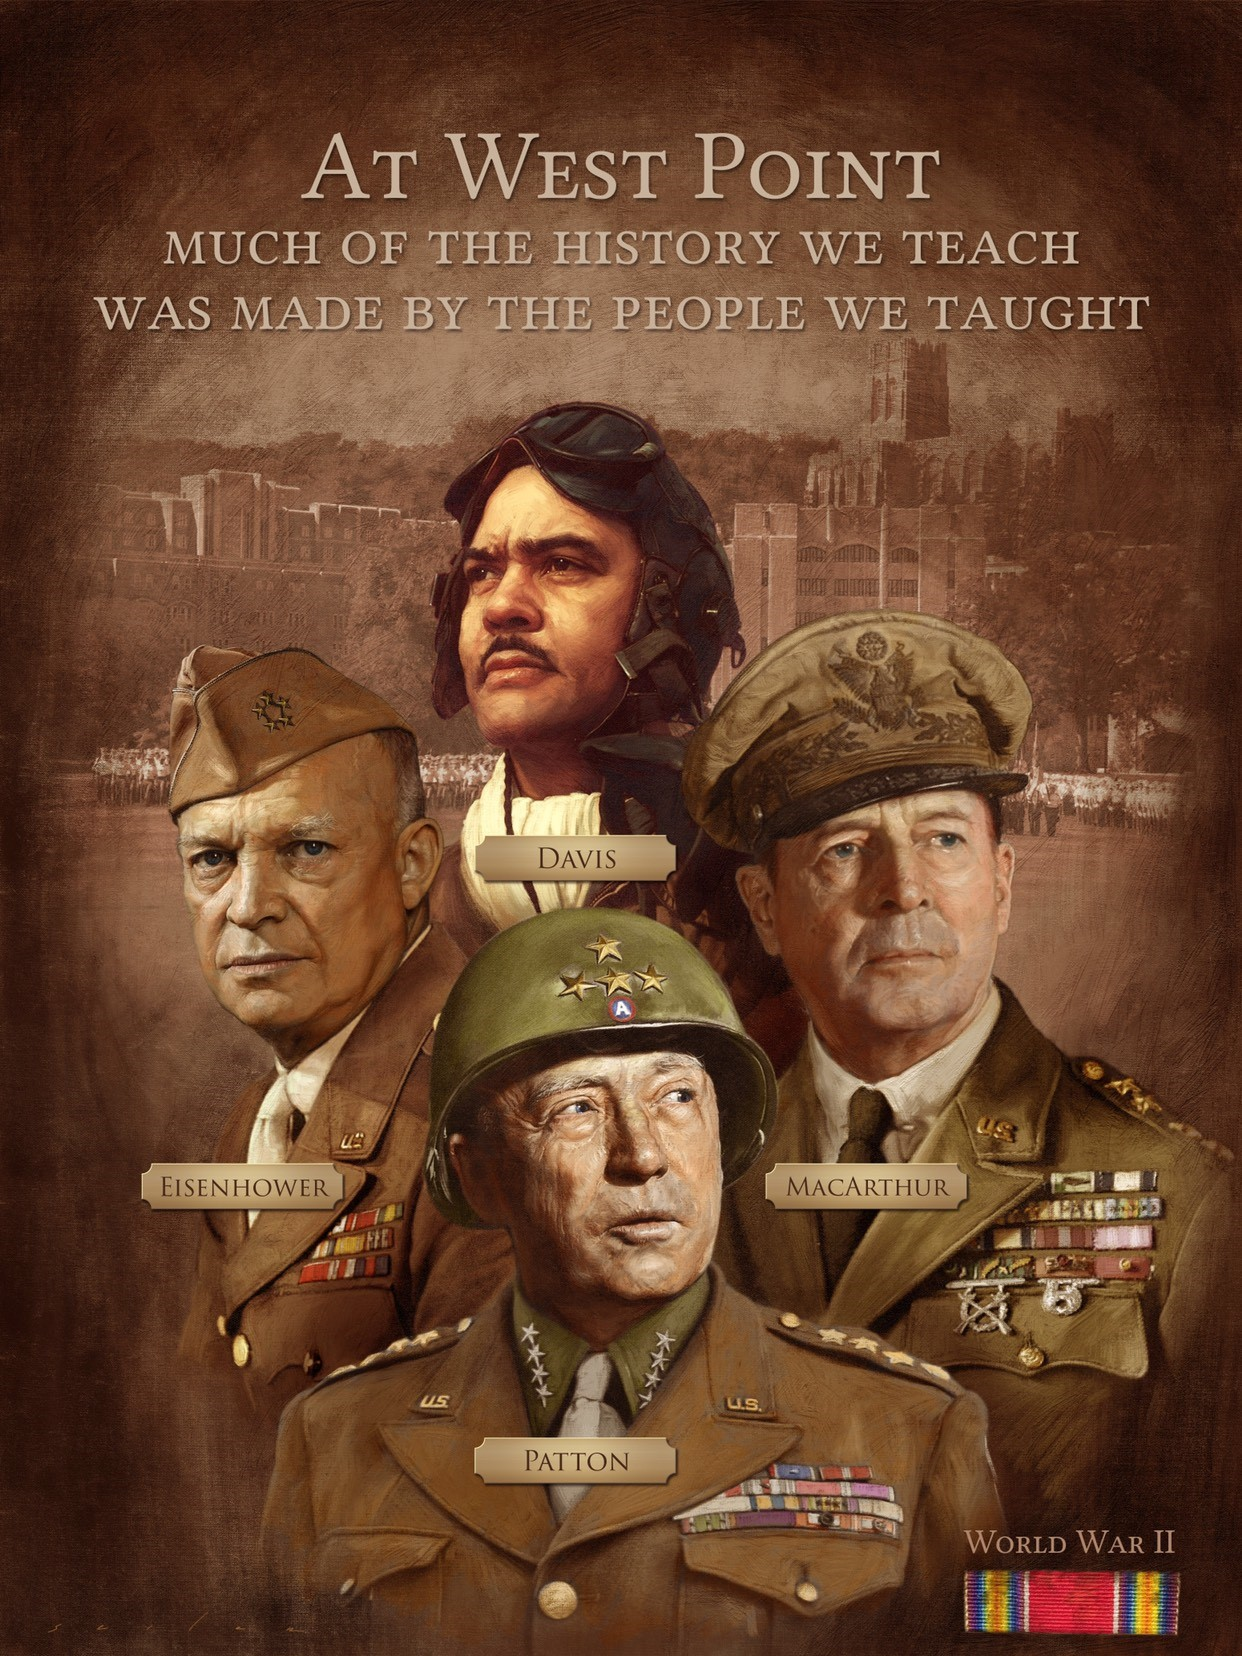 Poster features portraits of Generals Davis, Eisenhower, Patton, and MacArthur.